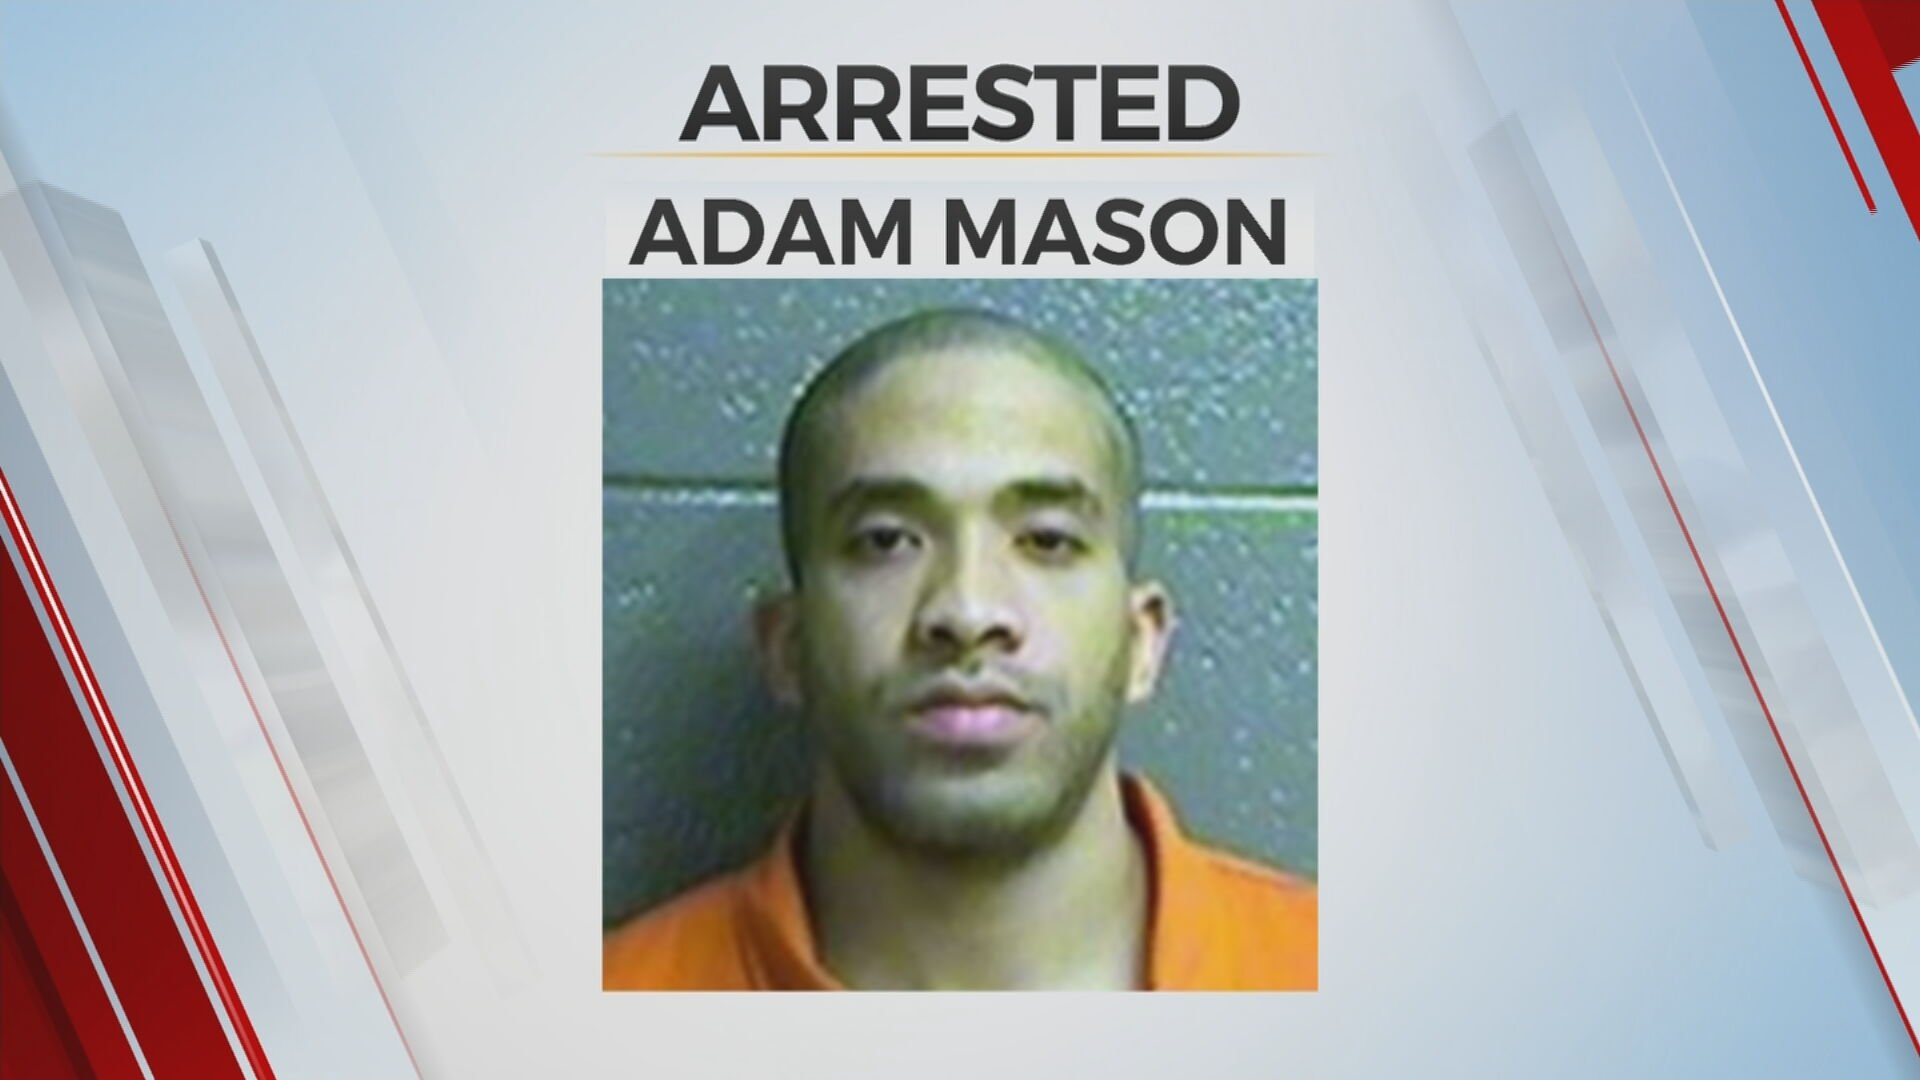 Investigators: Father In Custody Accused Of Murdering 5-Year-Old Daughter